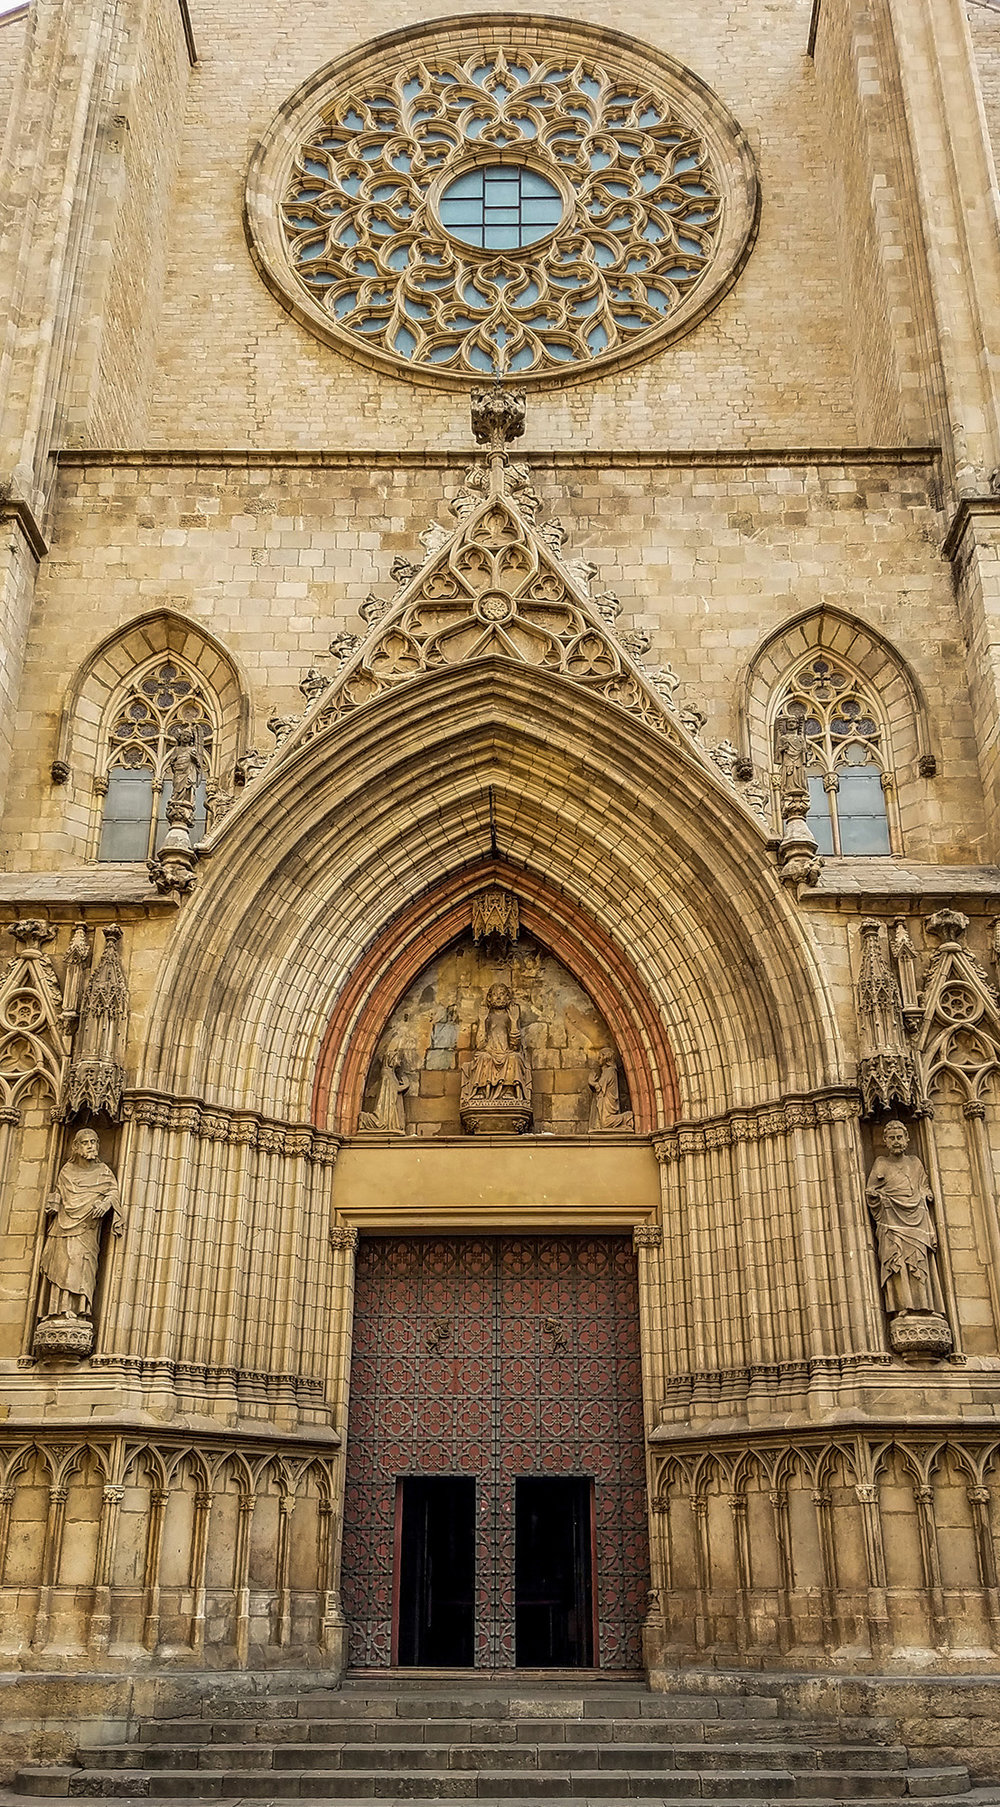 Entrance of the Santa Maria Del Mar - Photo by Shelley Treadaway